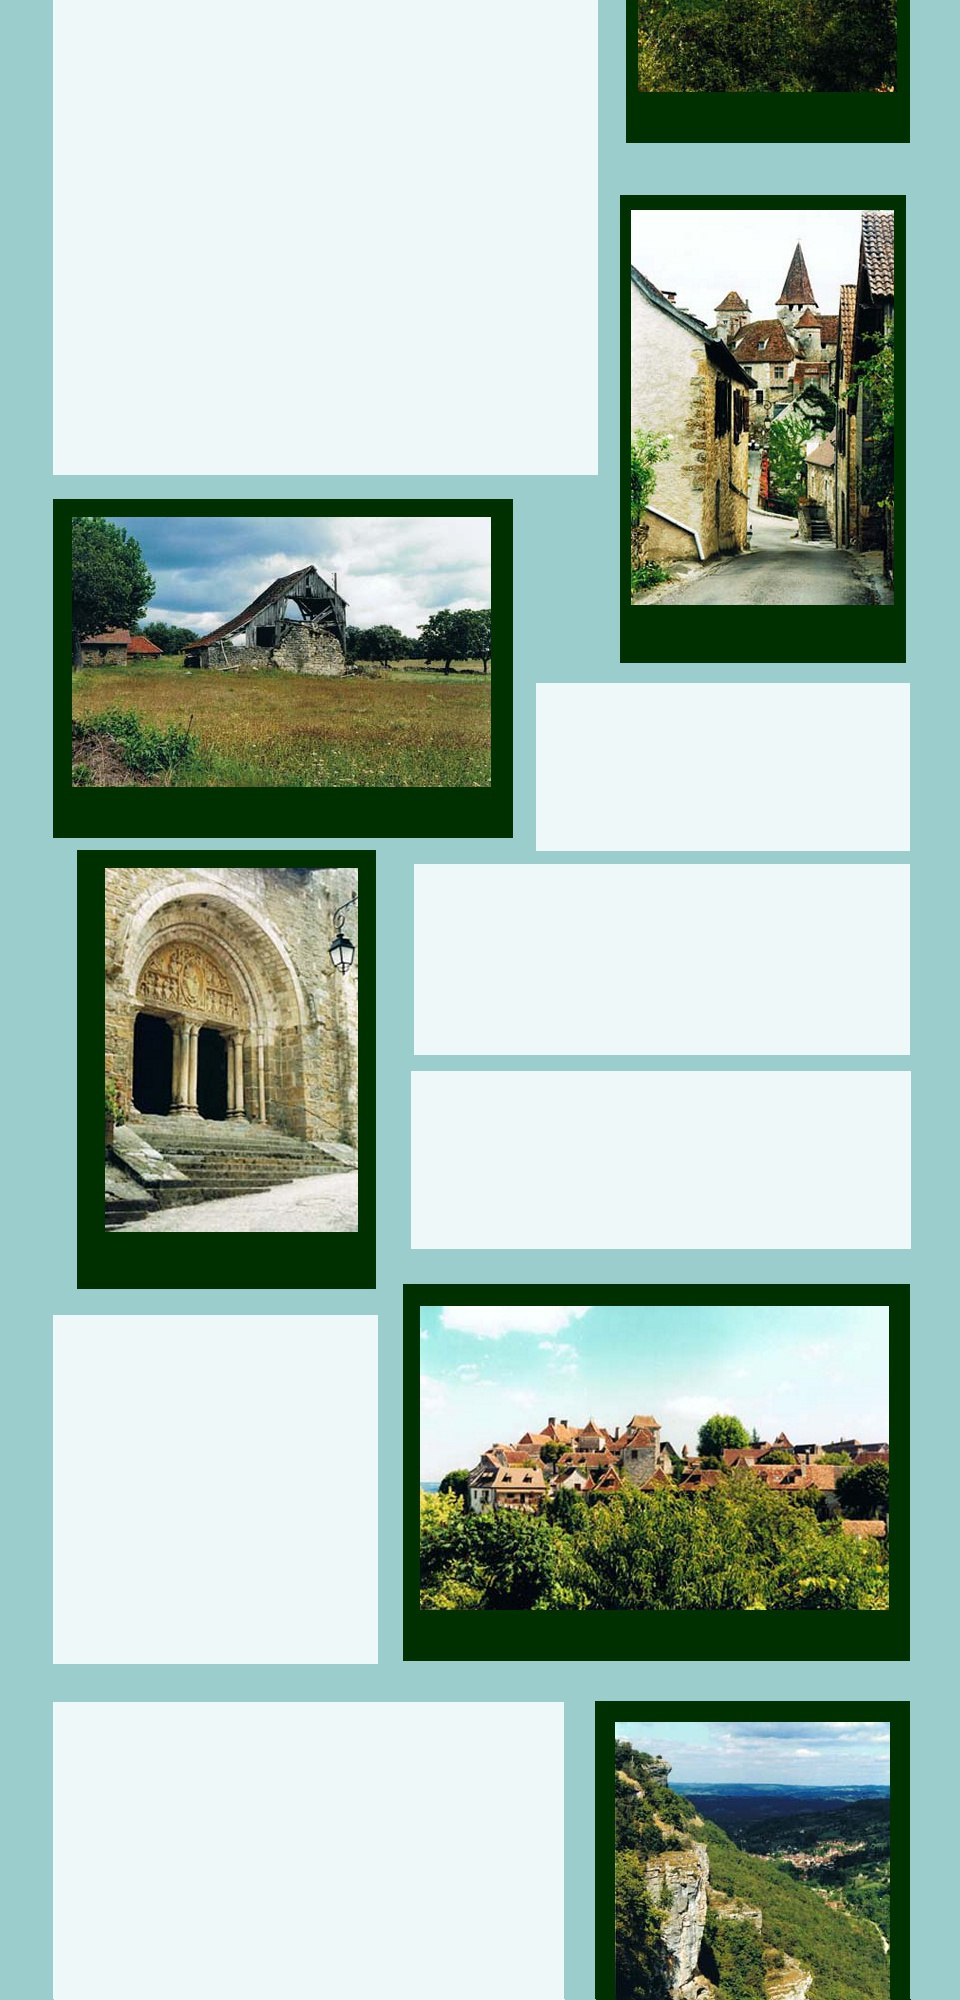 Walking in the Dordogne and the Cere valleys